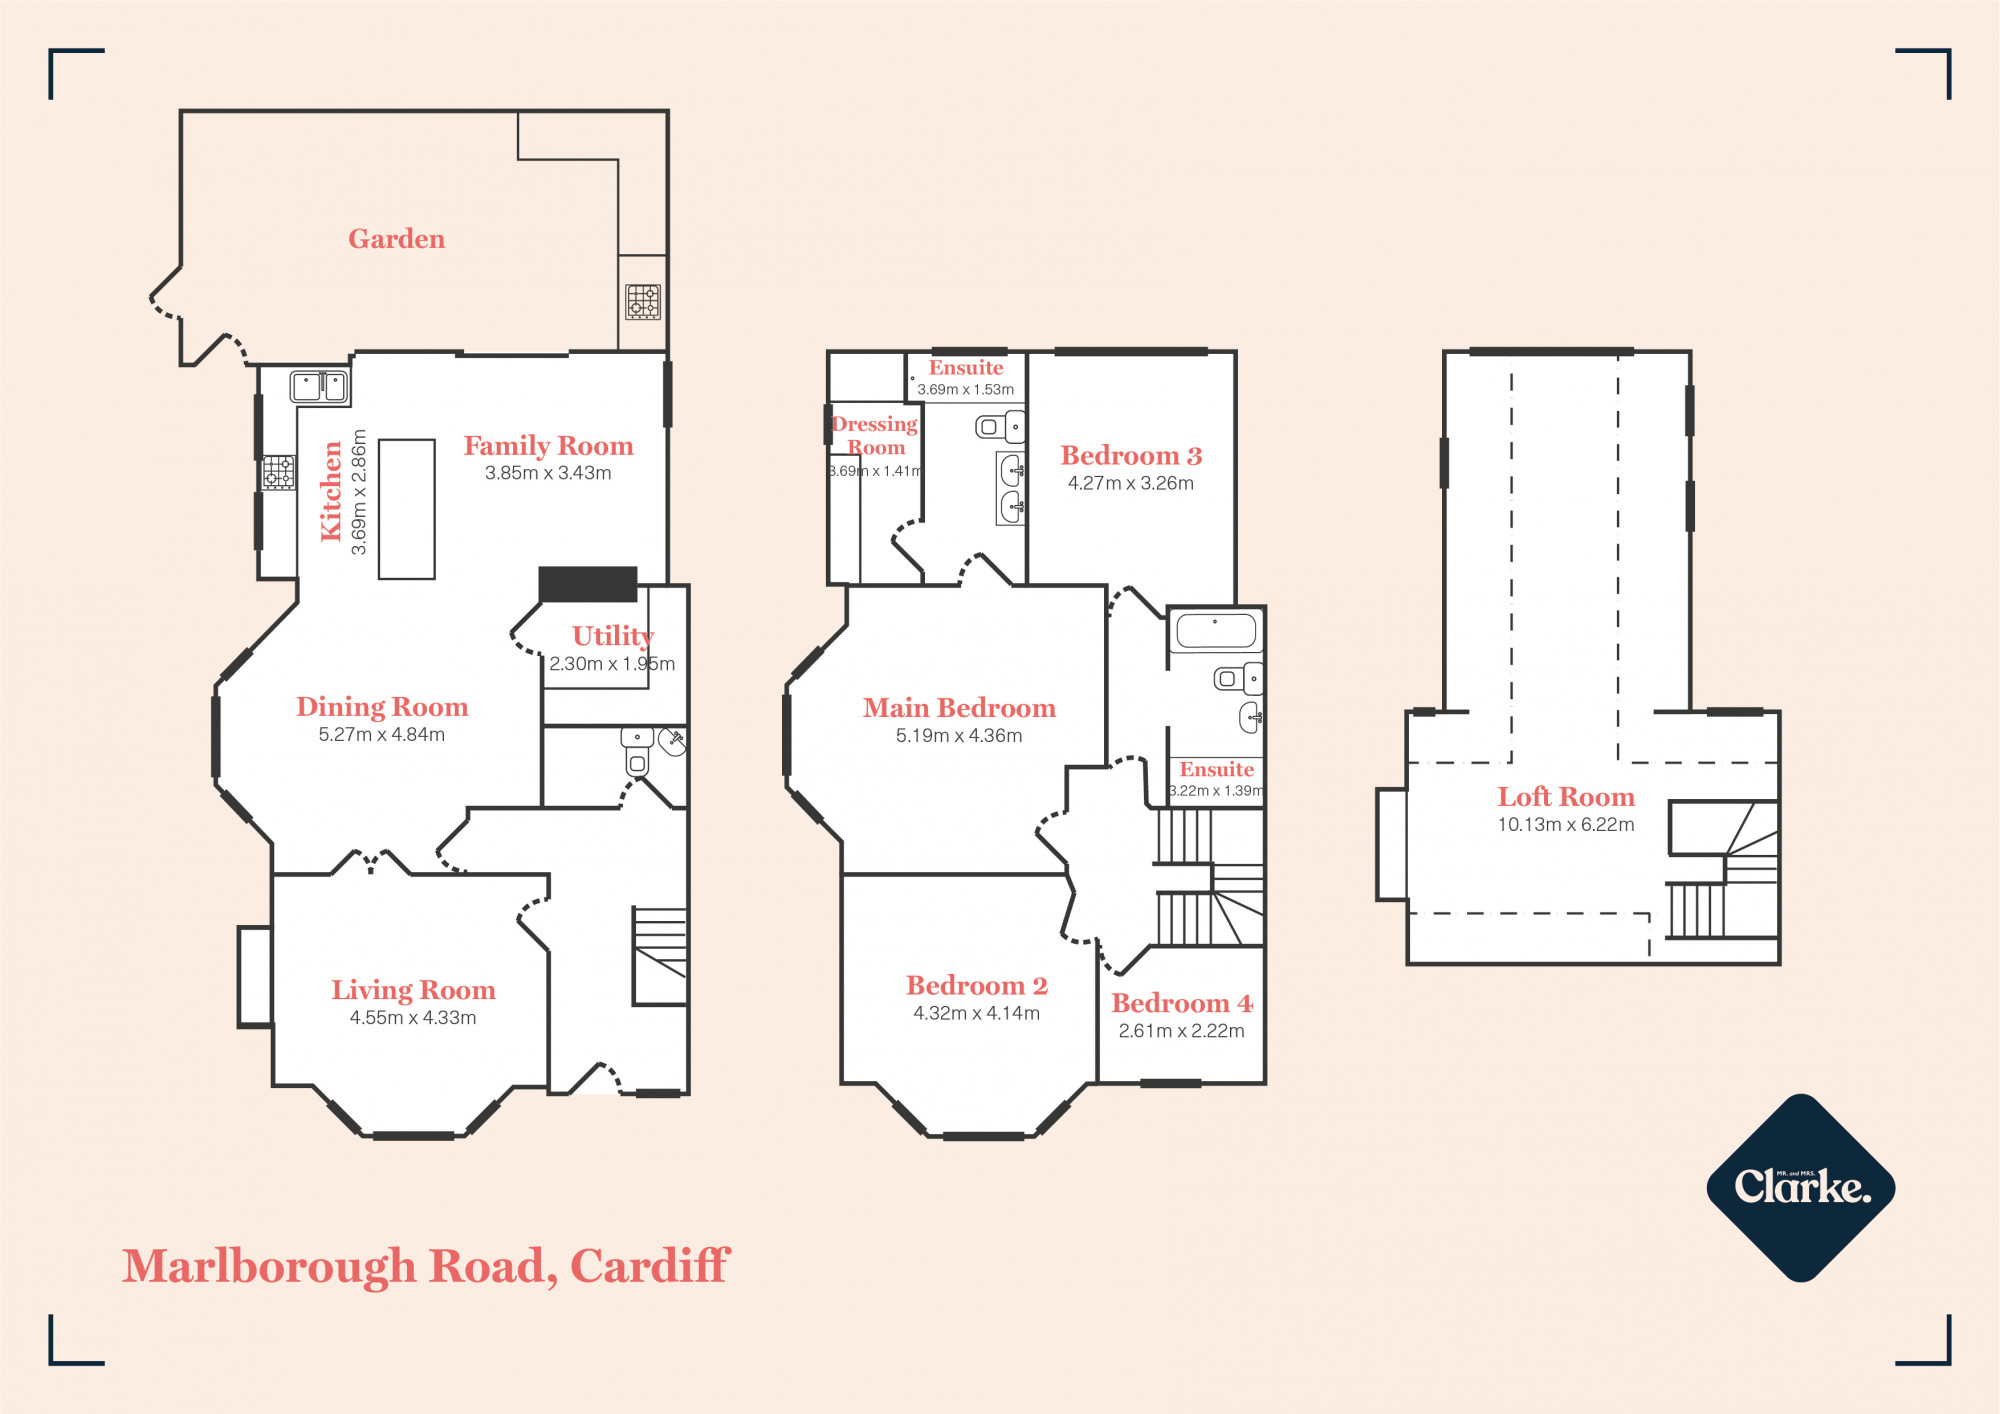 Marlborough Road, Cardiff. Floorplan.